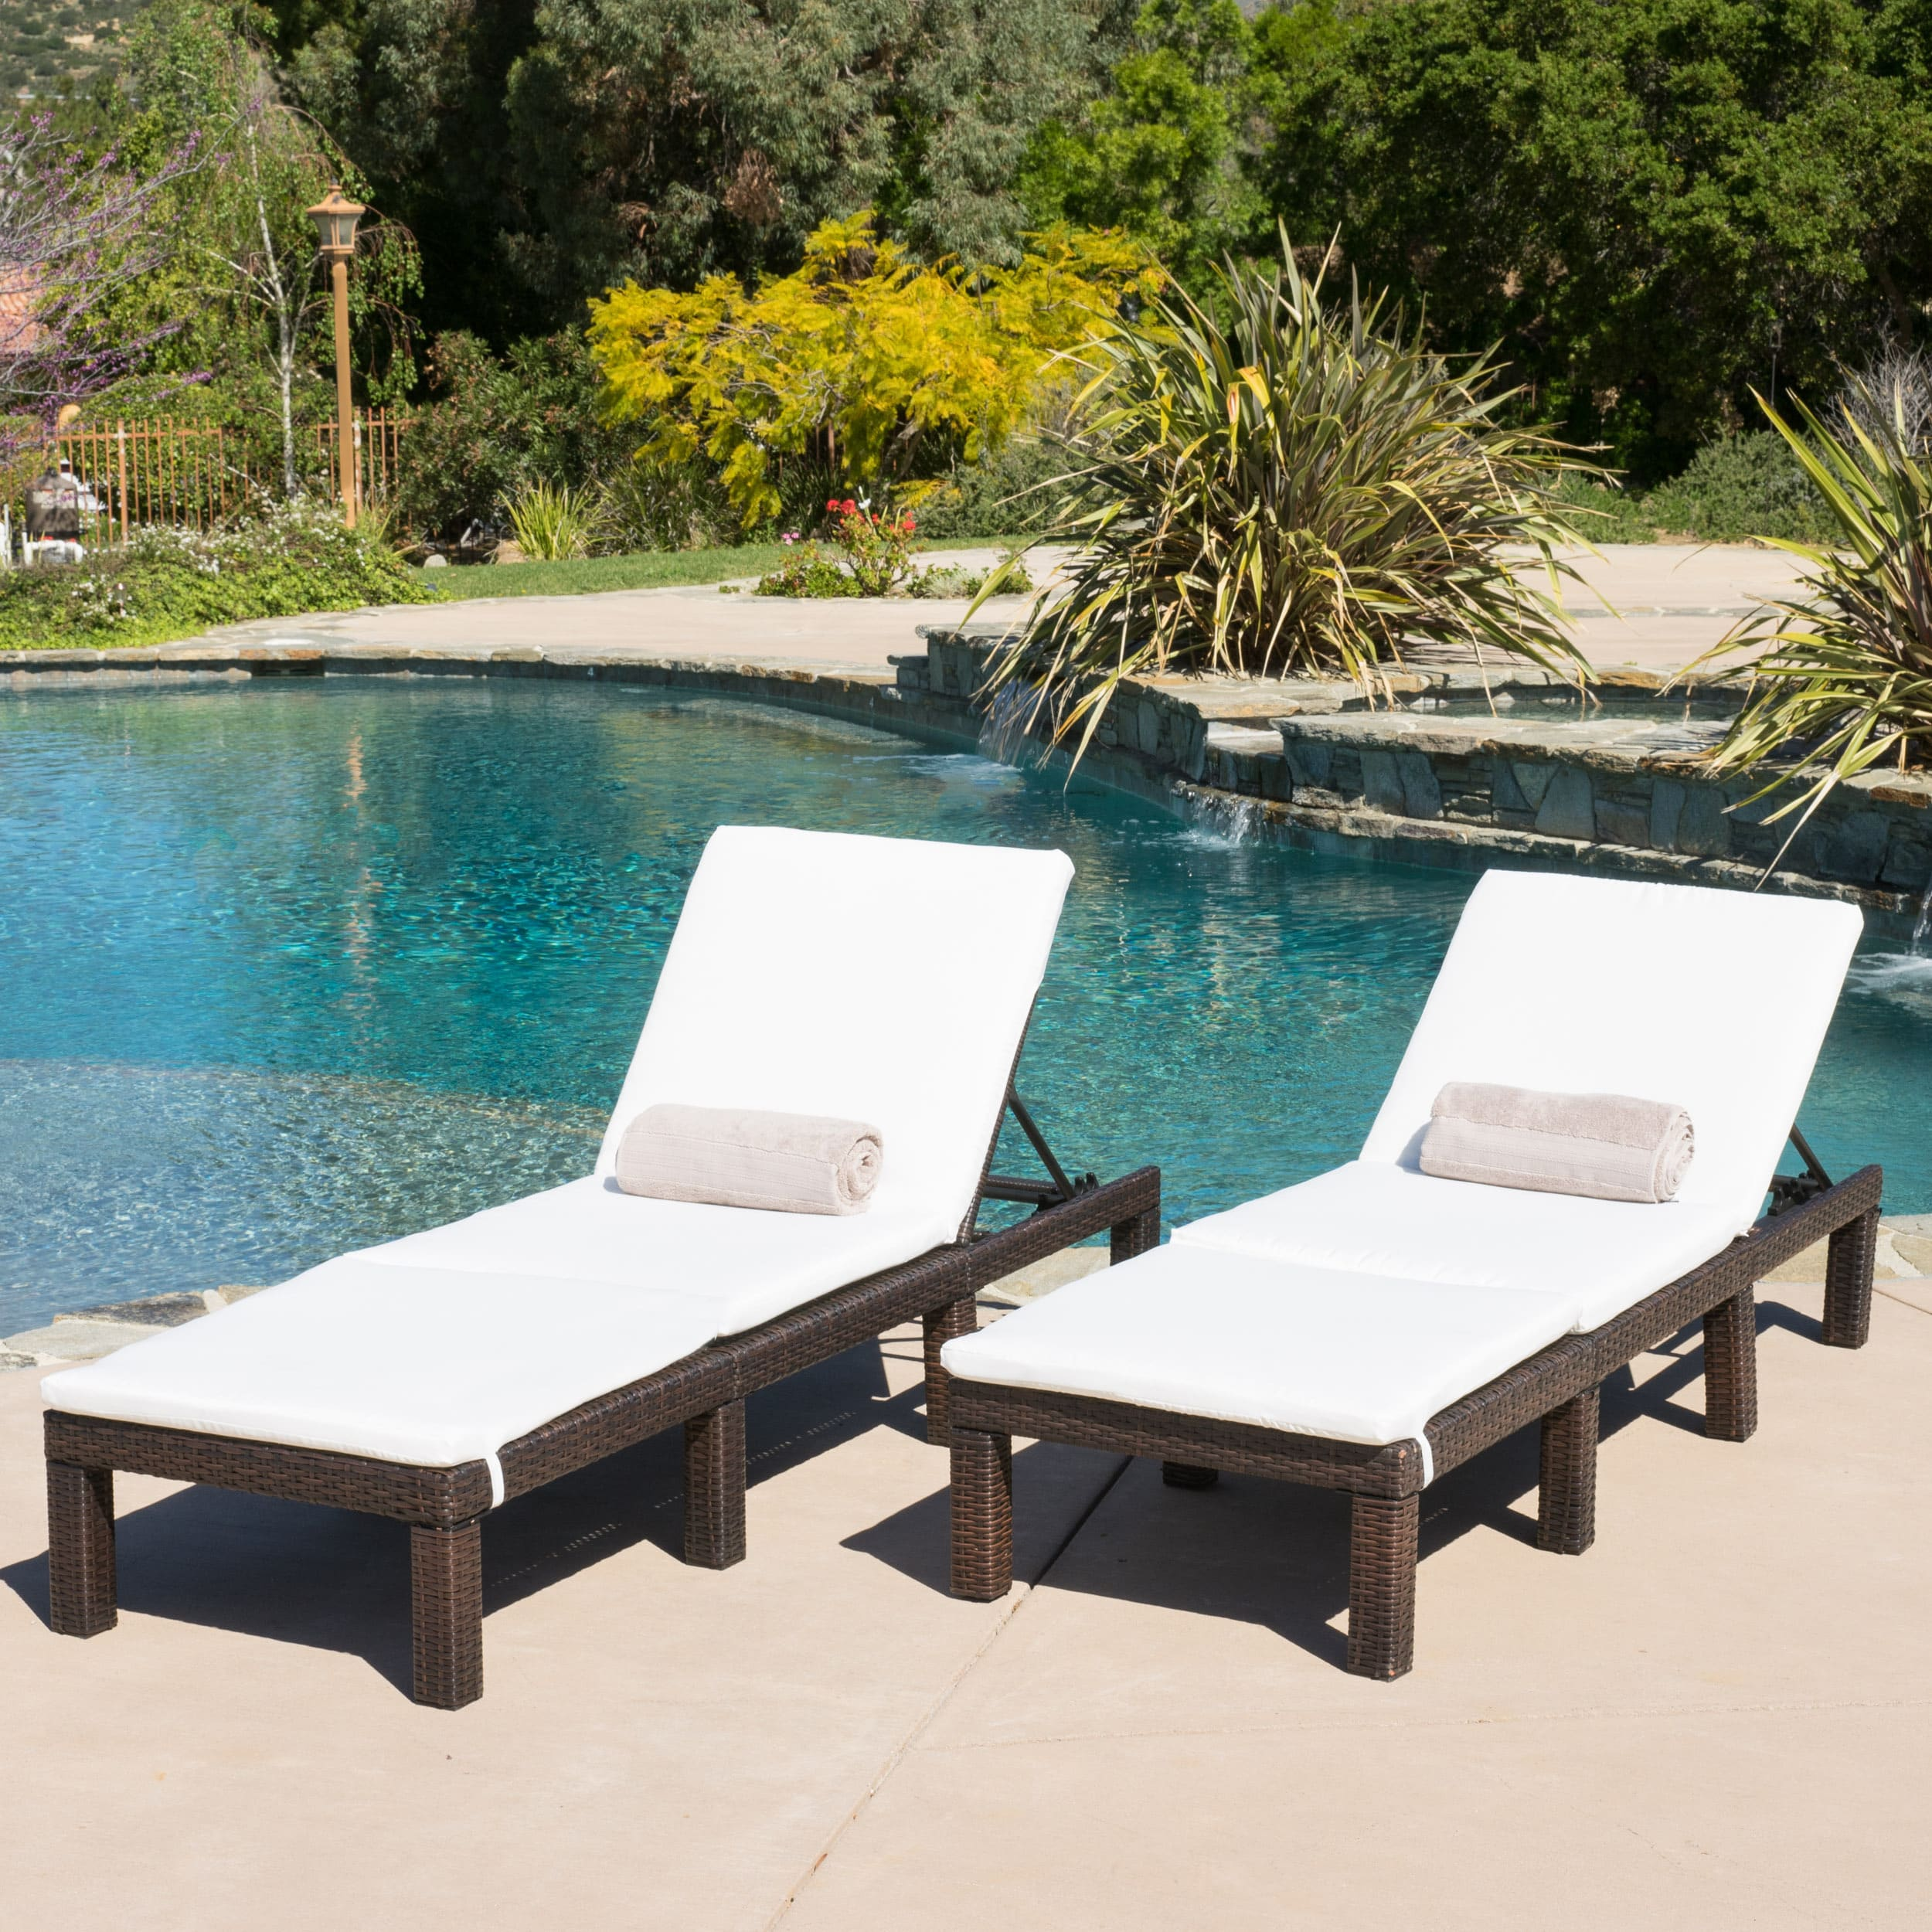 Lounge Garden Furniture buy outdoor chaise lounges online at overstock.com | our best patio UDBEPOM